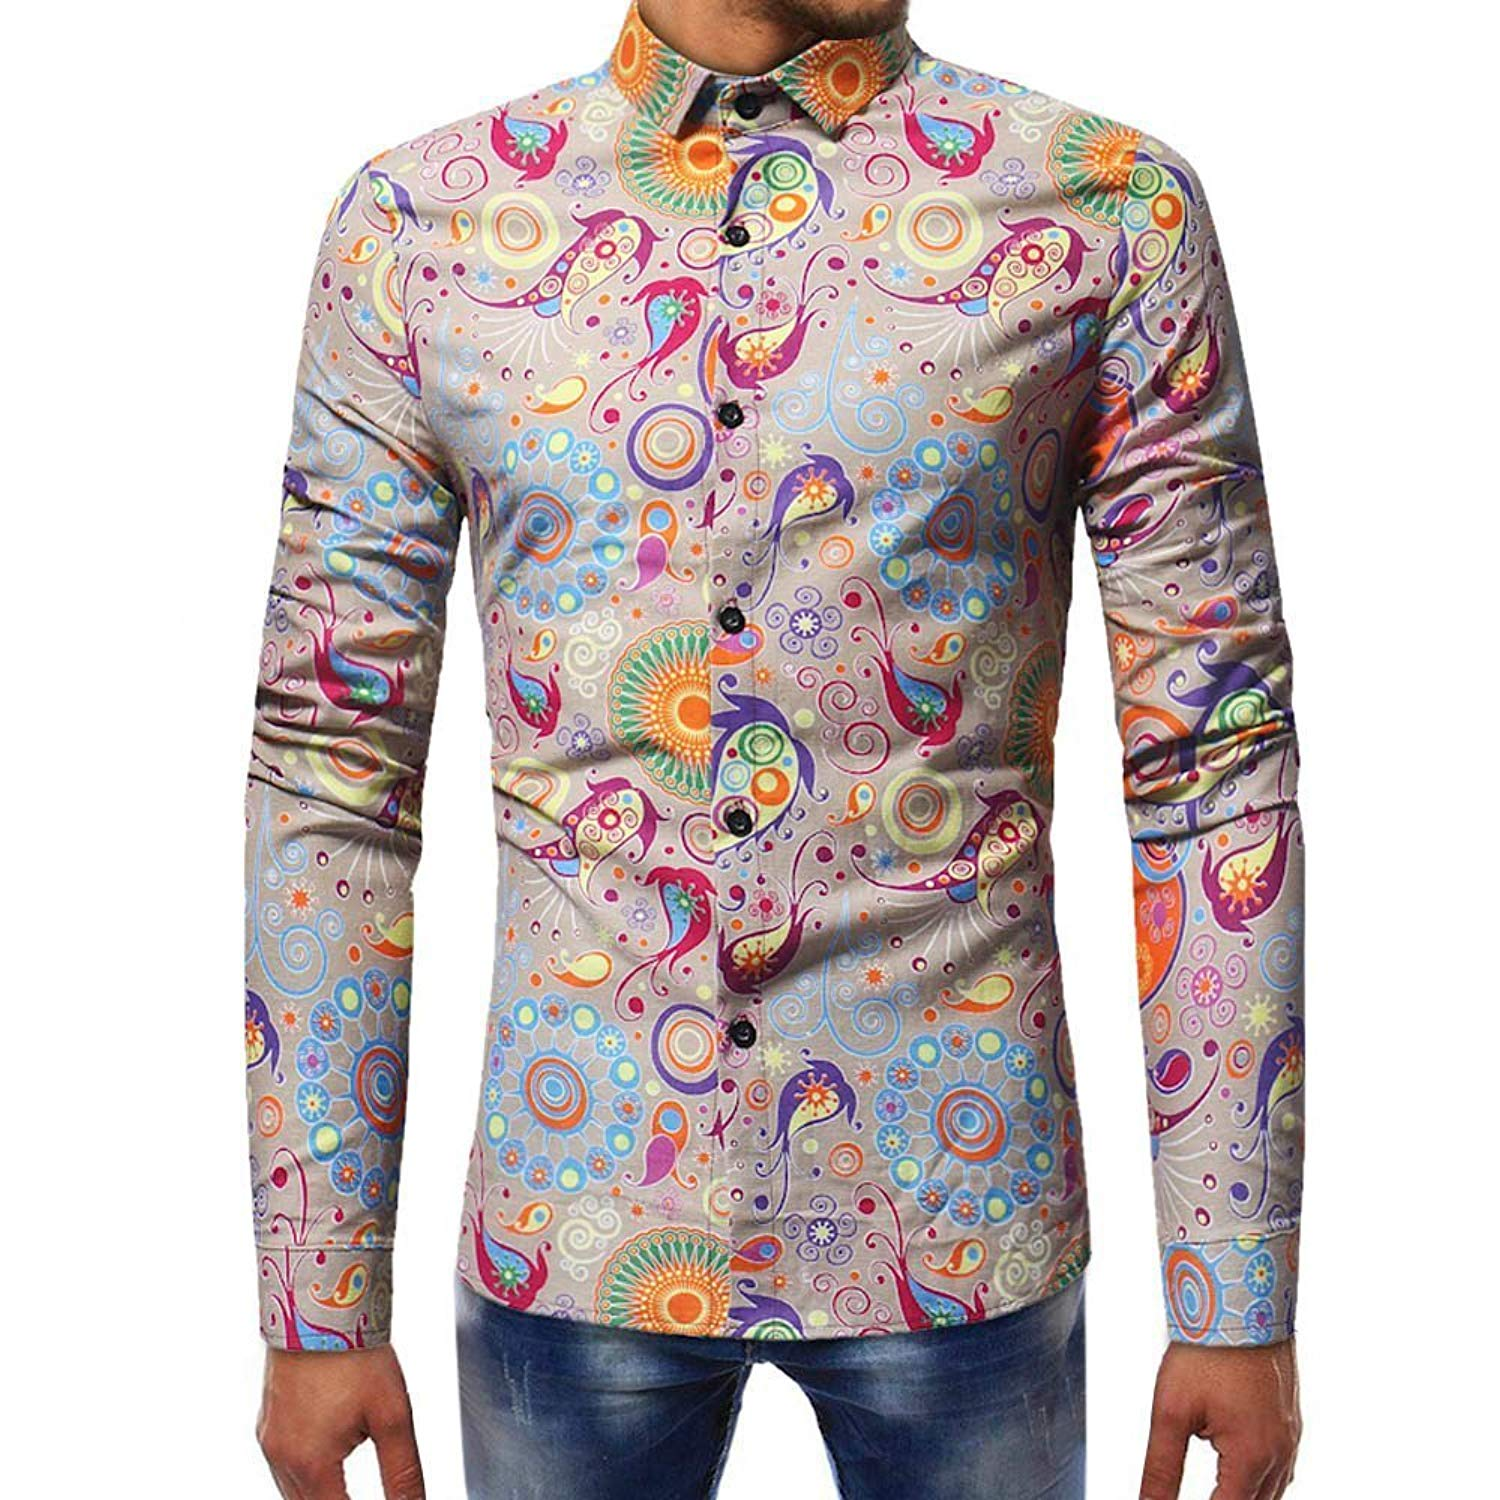 616669541dece Get Quotations · WEUIE Mens Shirts Clearance Mens Fashion Printed Blouse  Casual Long Sleeve Slim Shirts Tops (